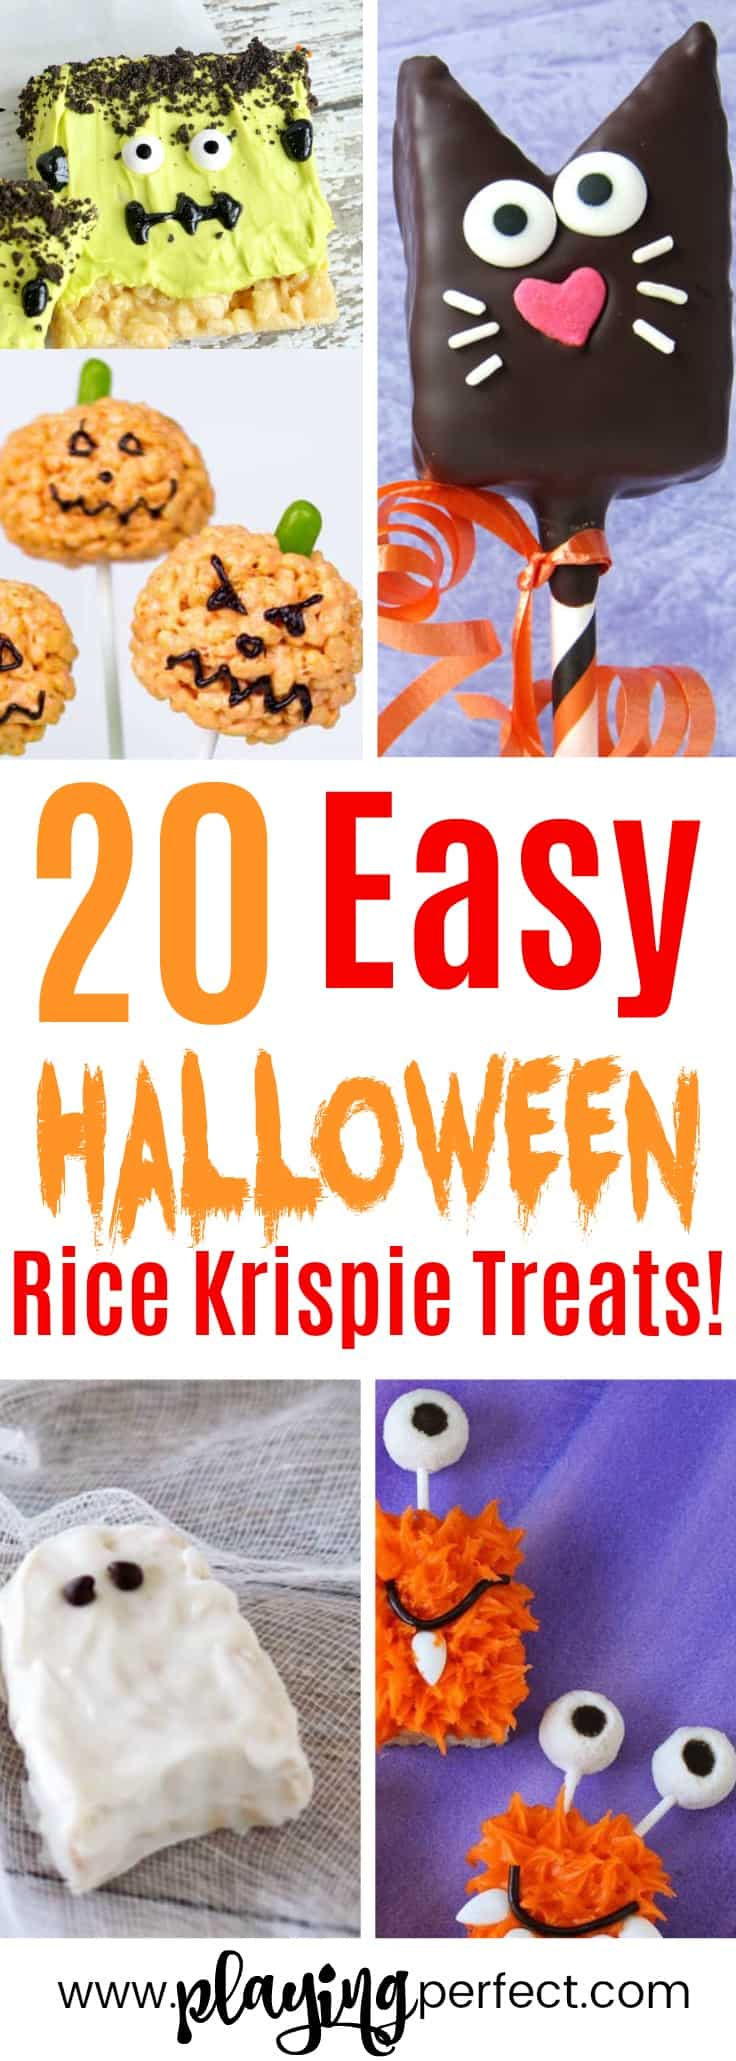 20 Of The Best Halloween Rice Krispie Treats - Playing Perfect